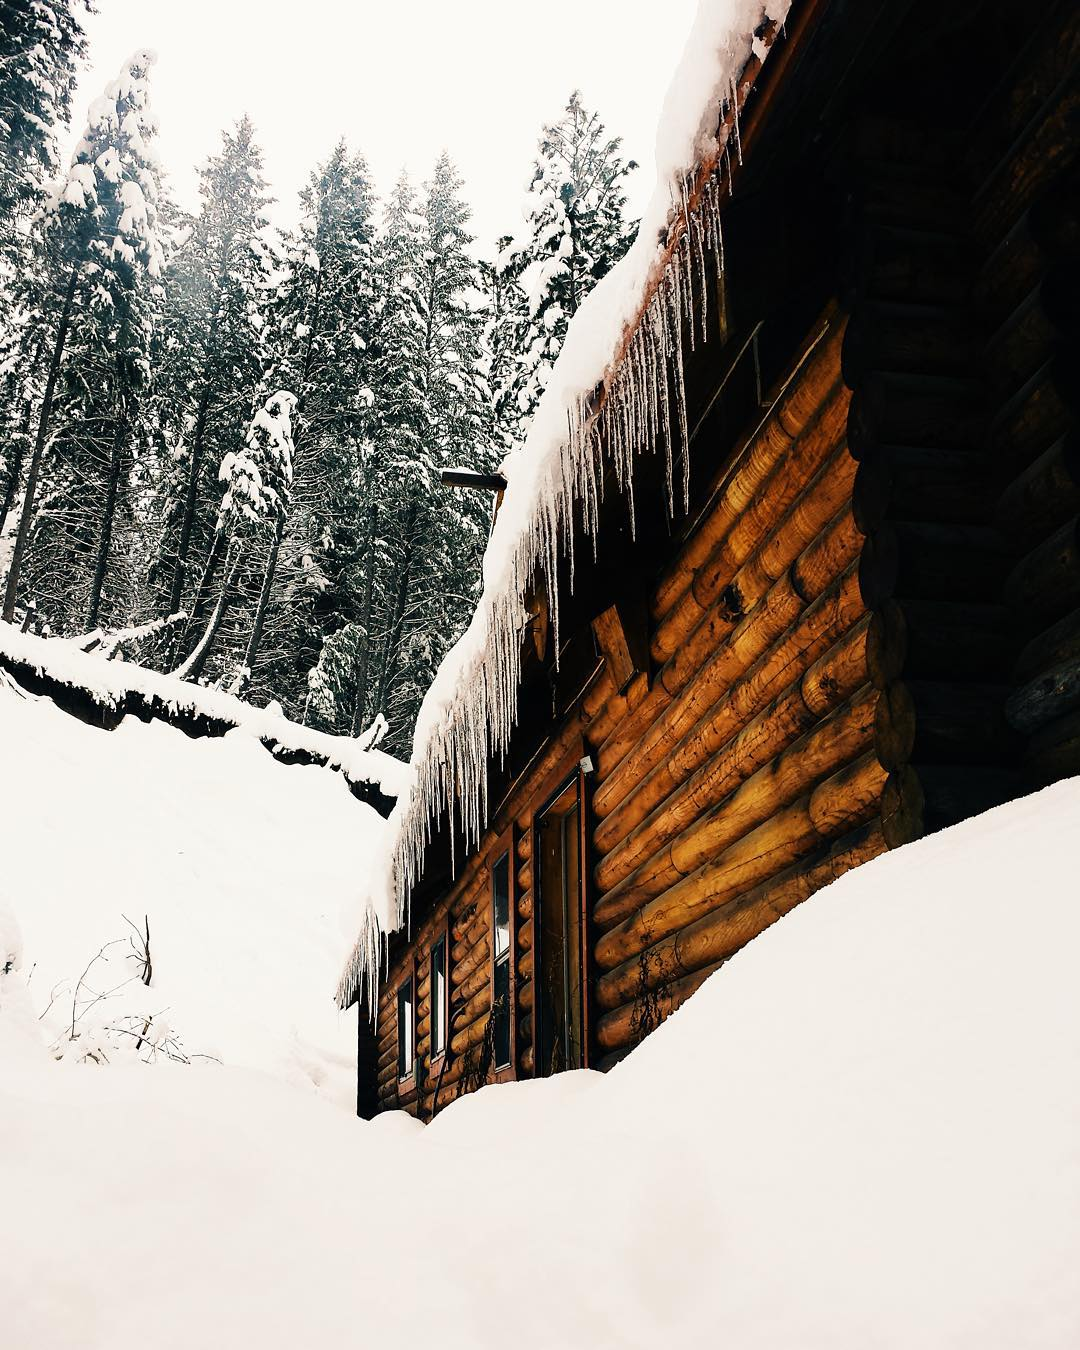 Icicles for dinner  Photo by @richardrichheart